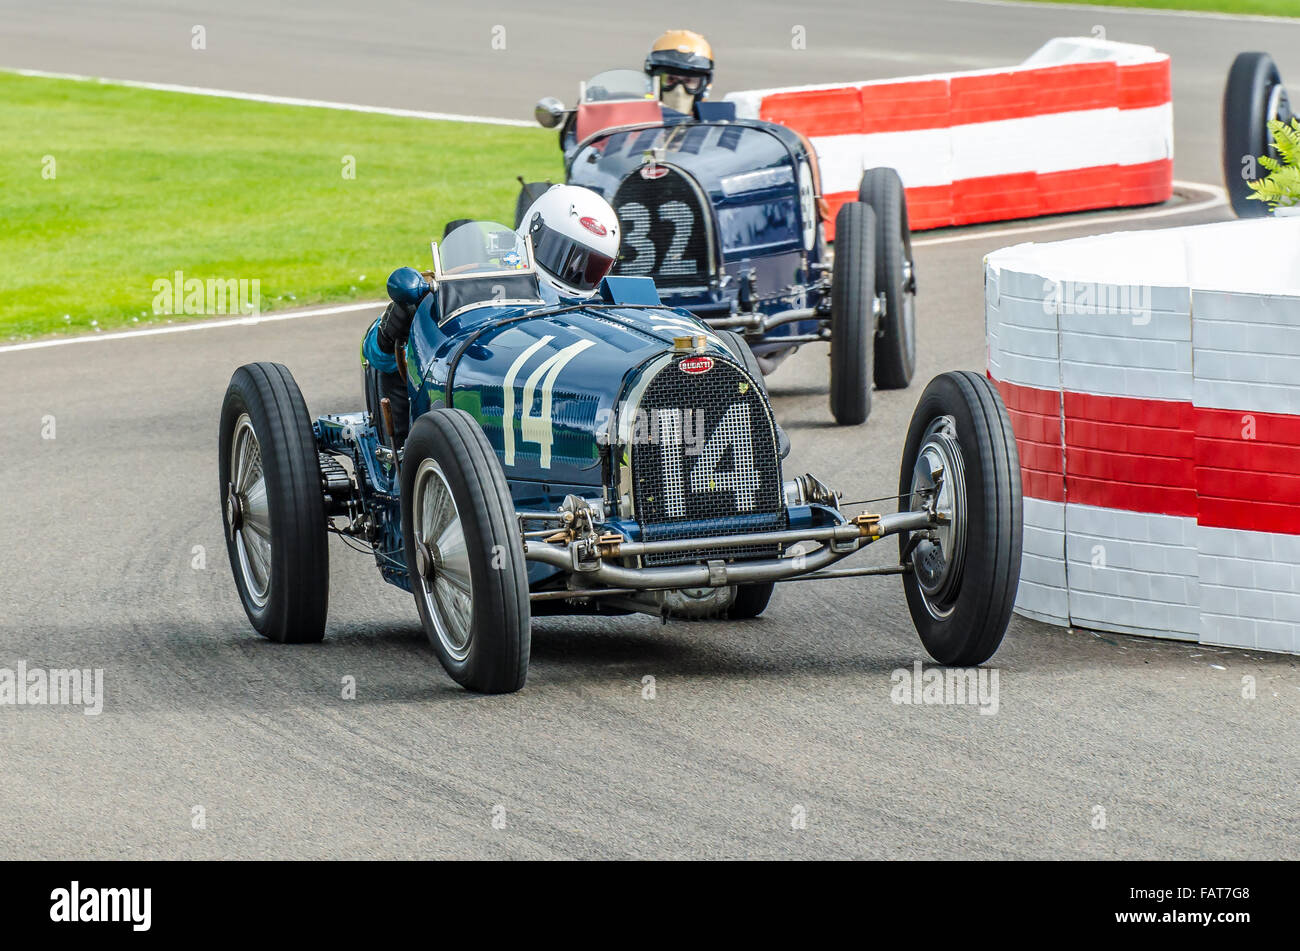 1934 Bugatti Type 59 is owned by Charles McCabe and was driven by Charles Knill-Jones at the Goodwood Revival 2015. - Stock Image